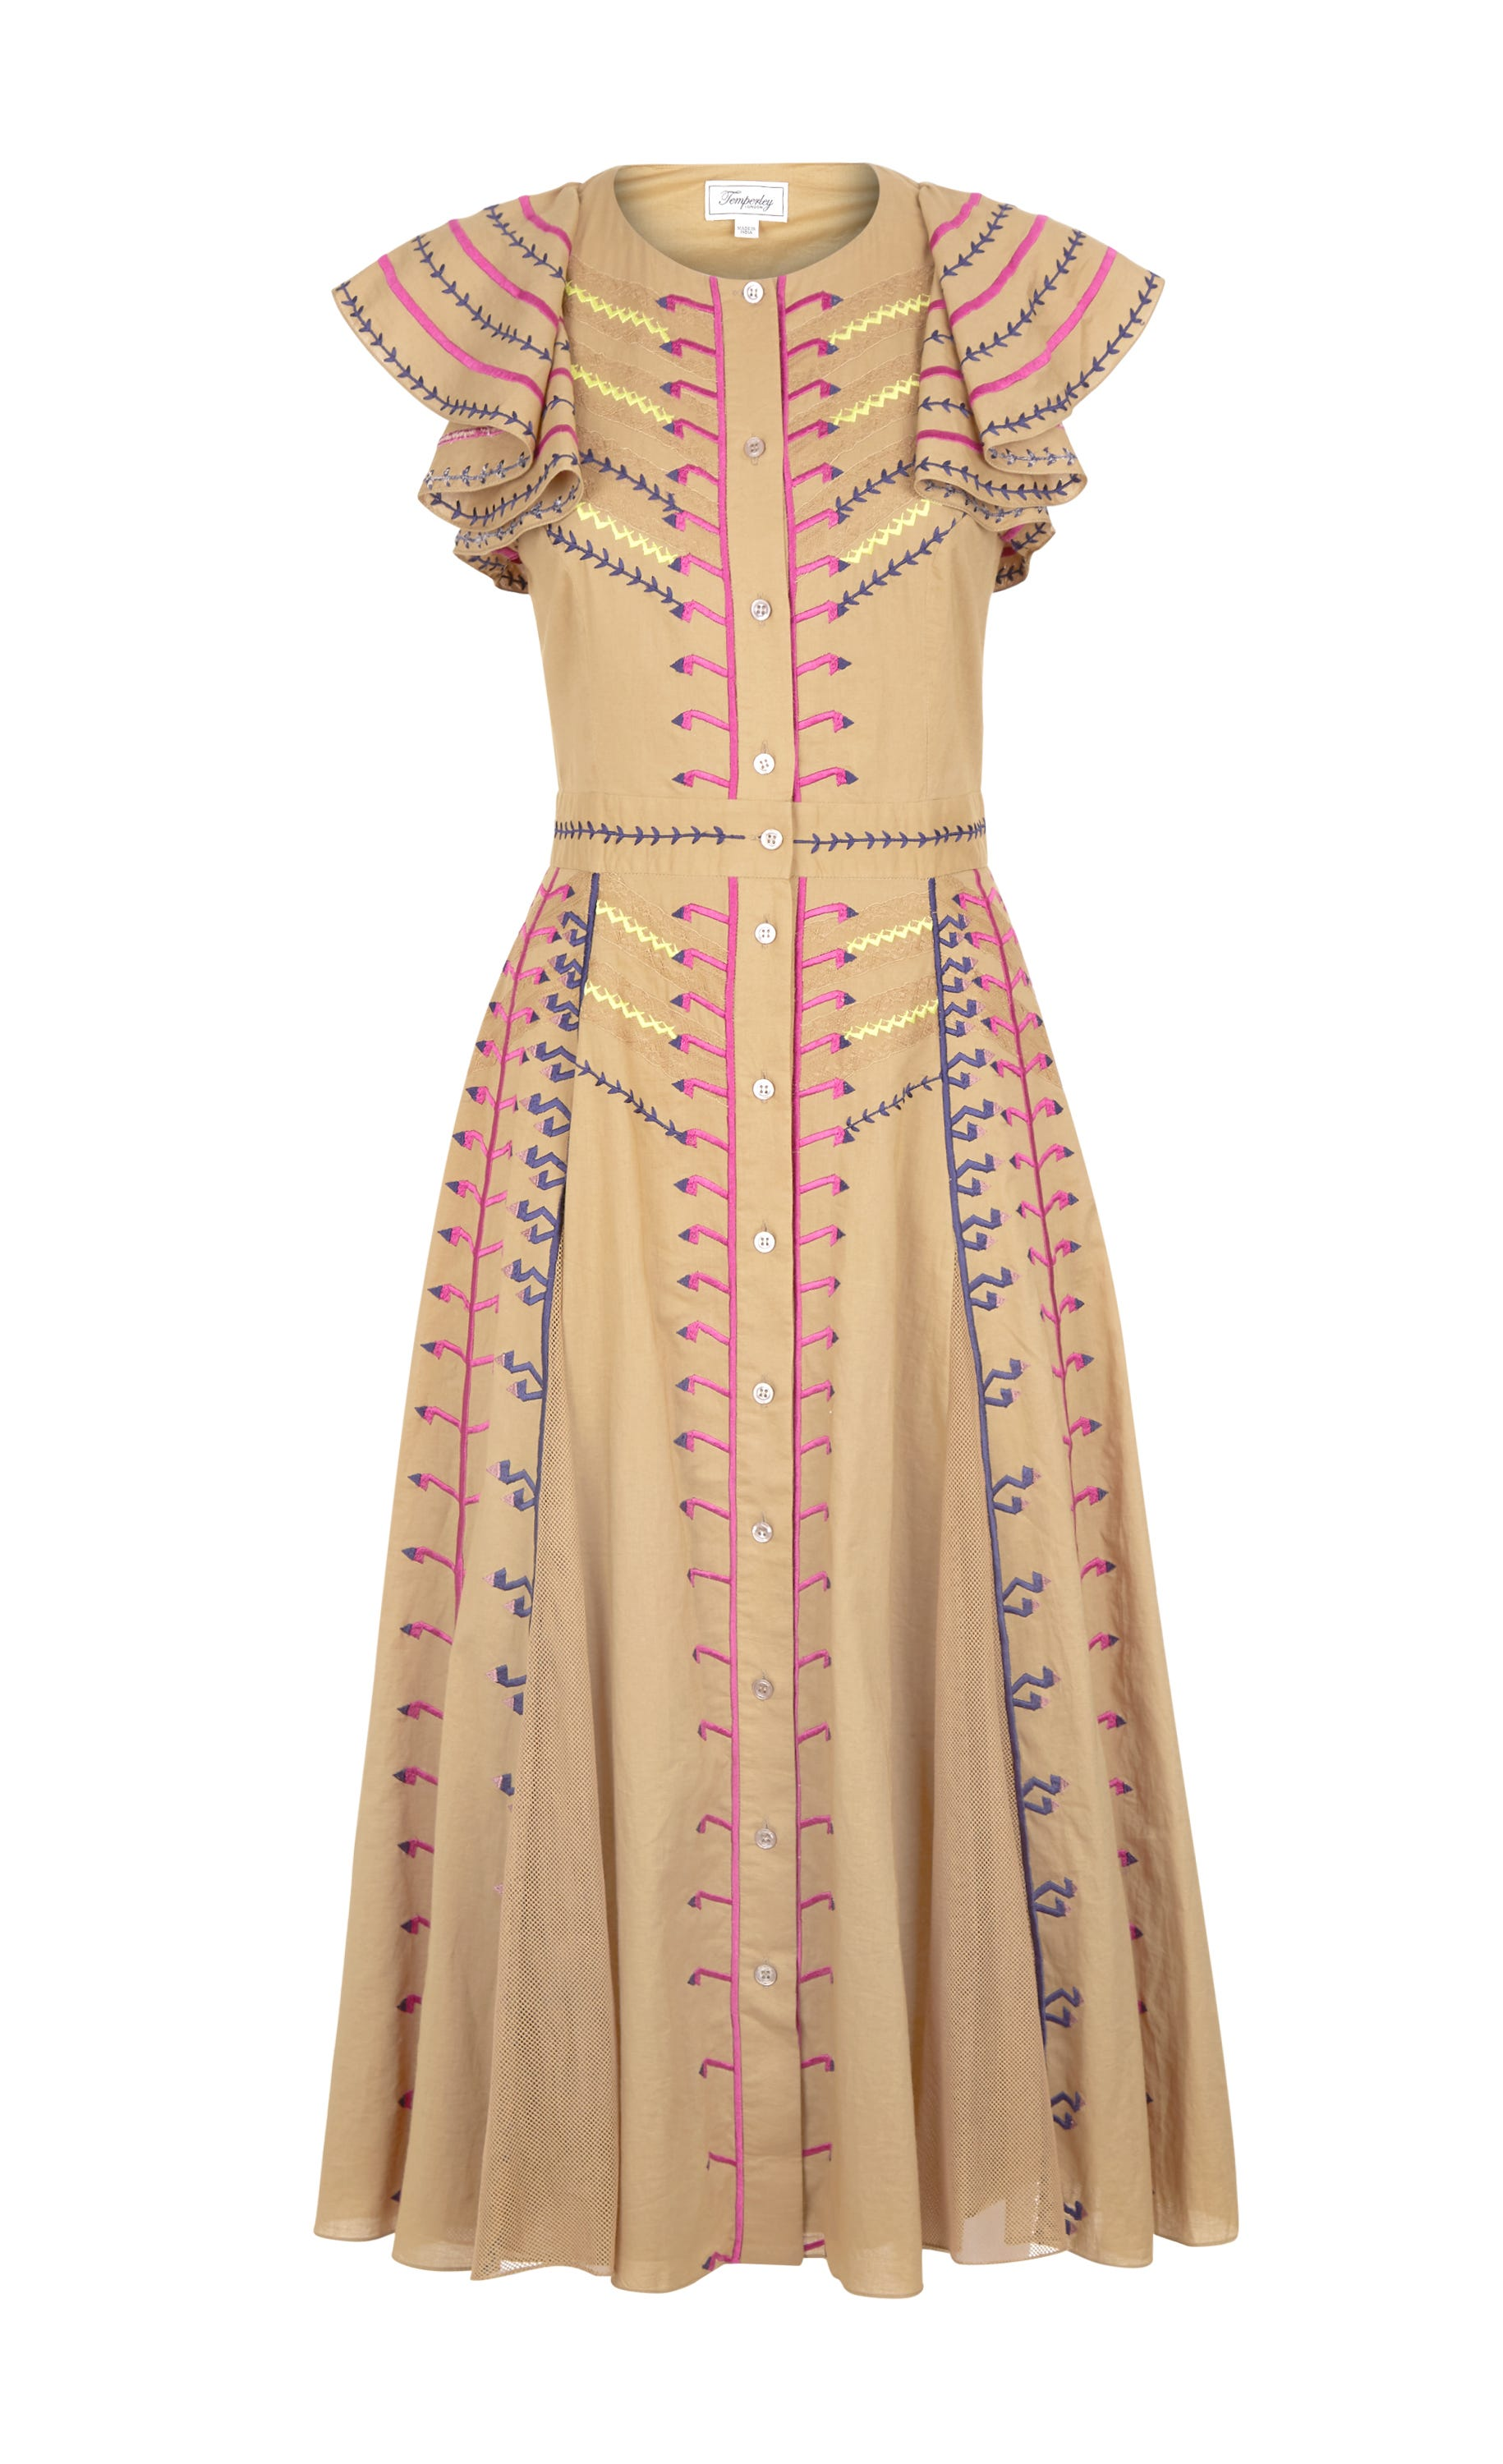 Expedition Sleeved Dress